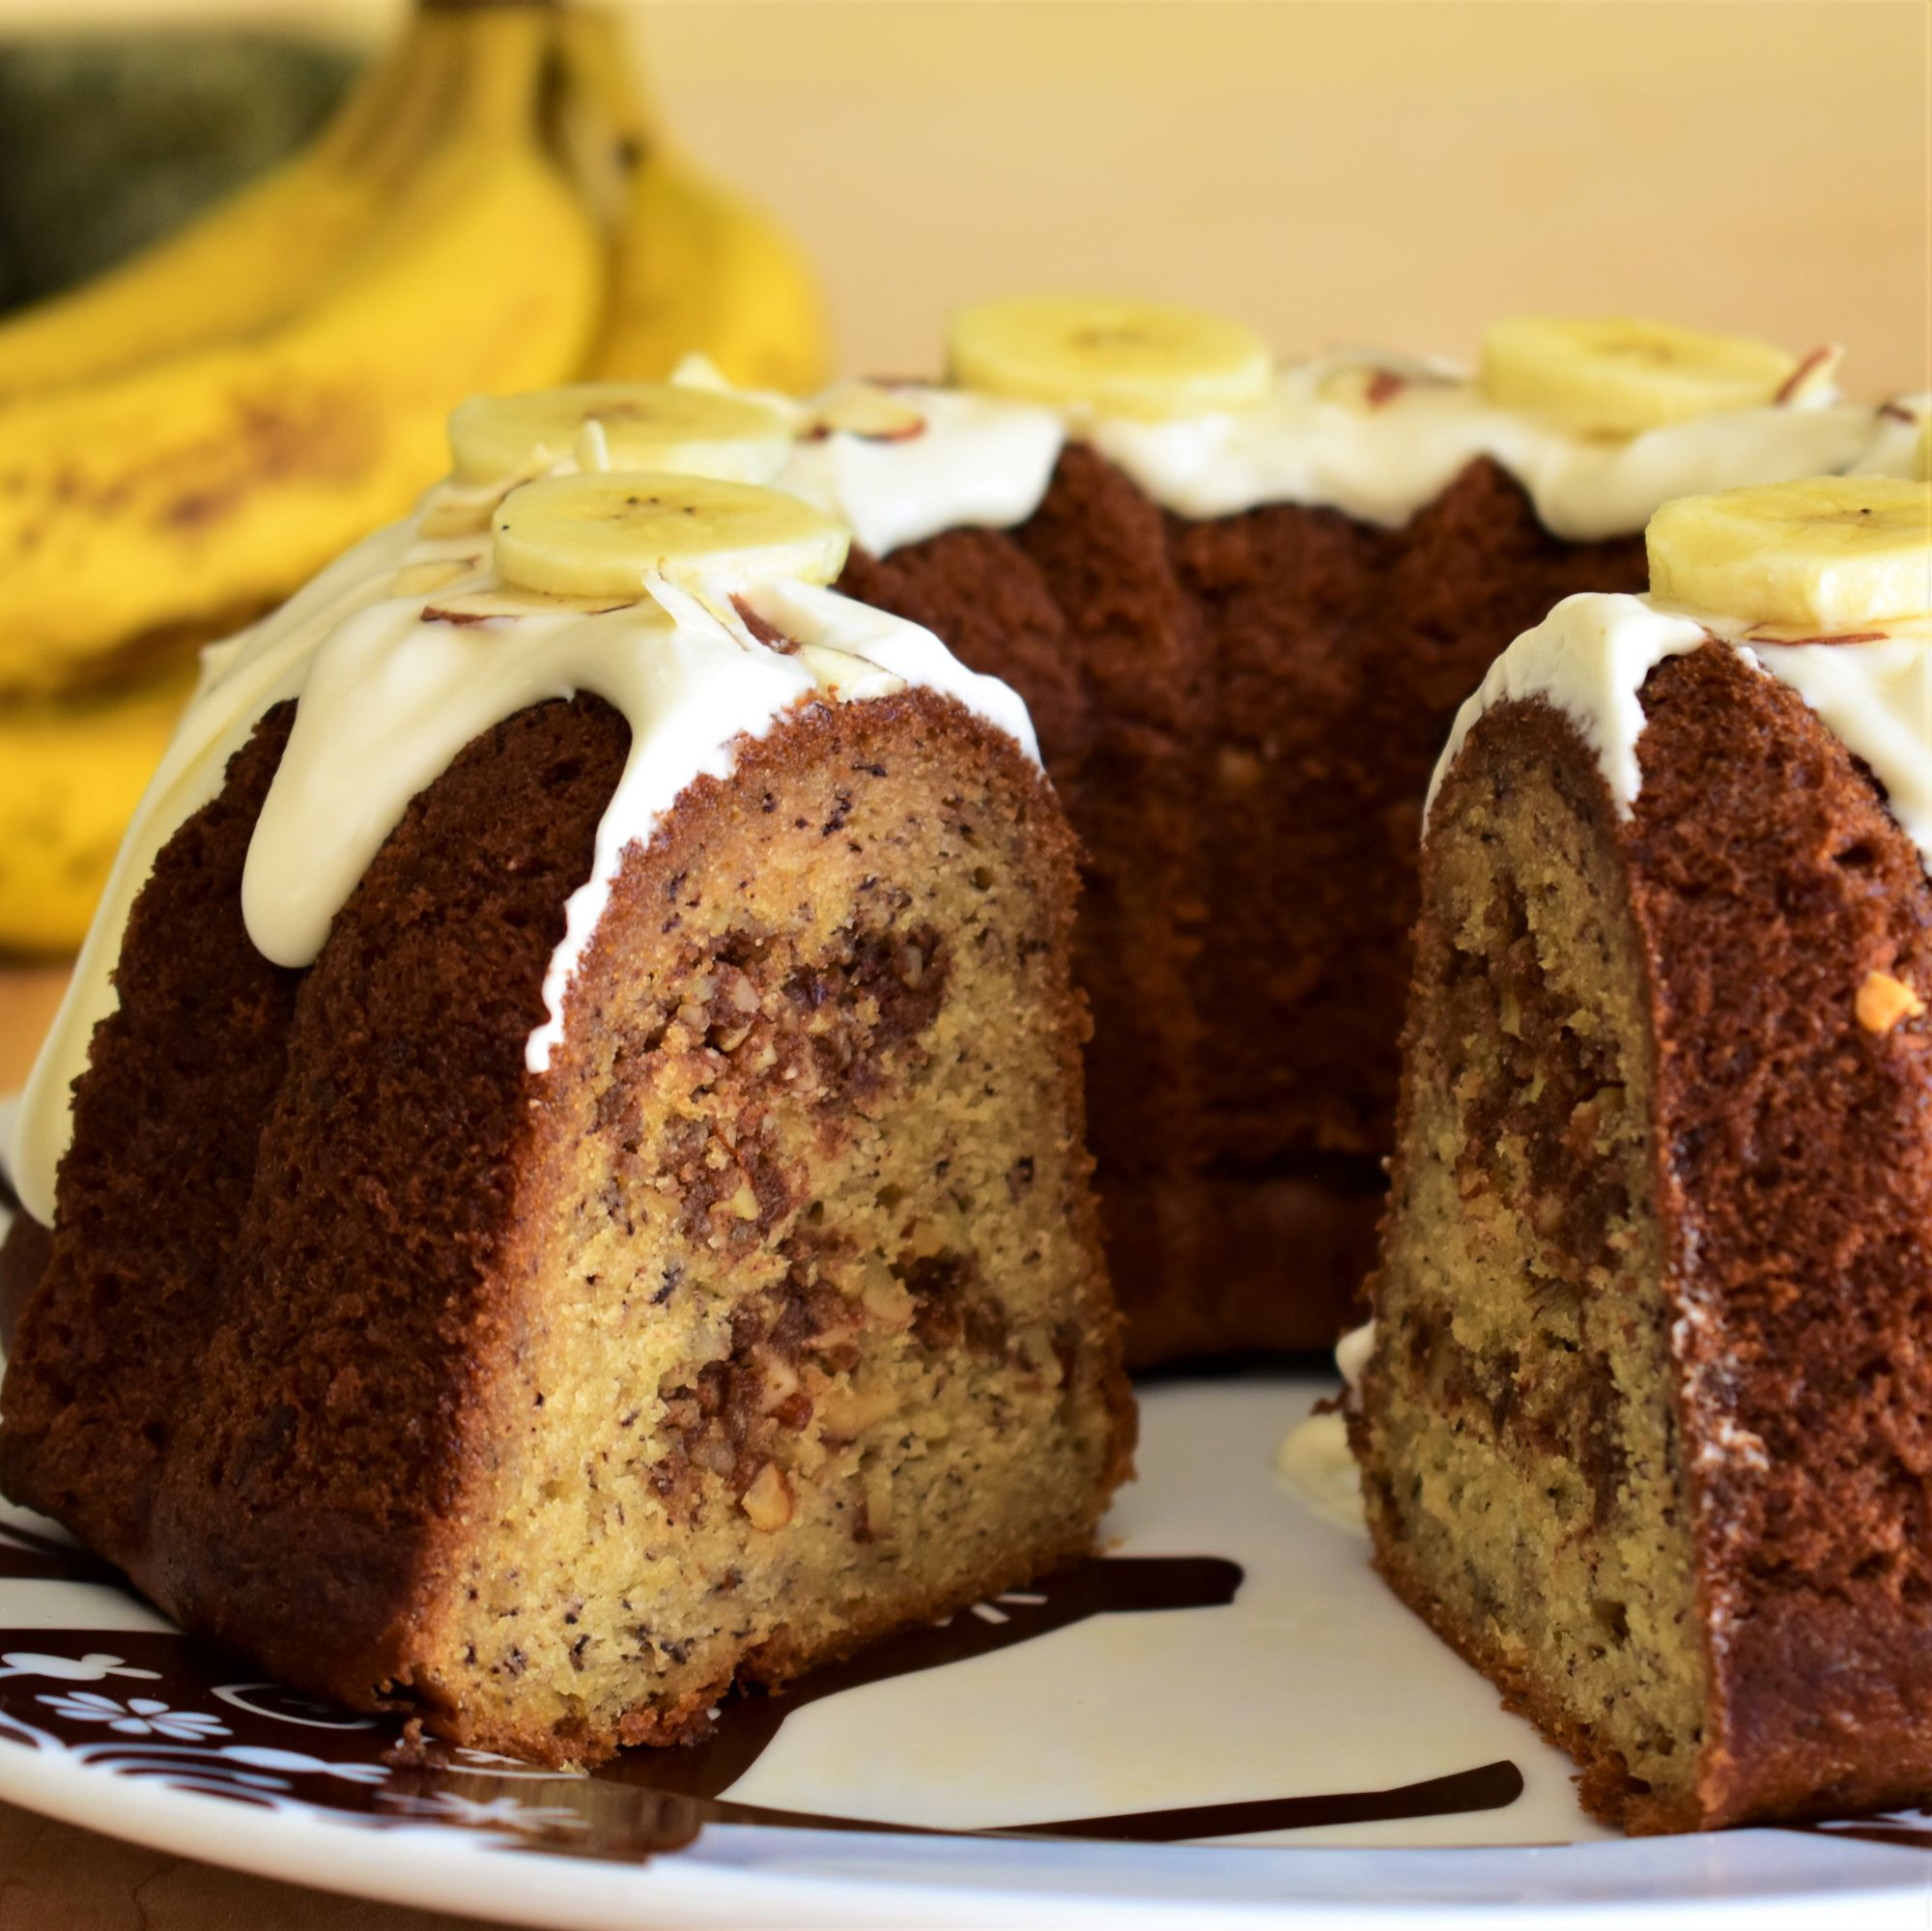 10 Banana Bundt Cakes to Make with Excess Bananas